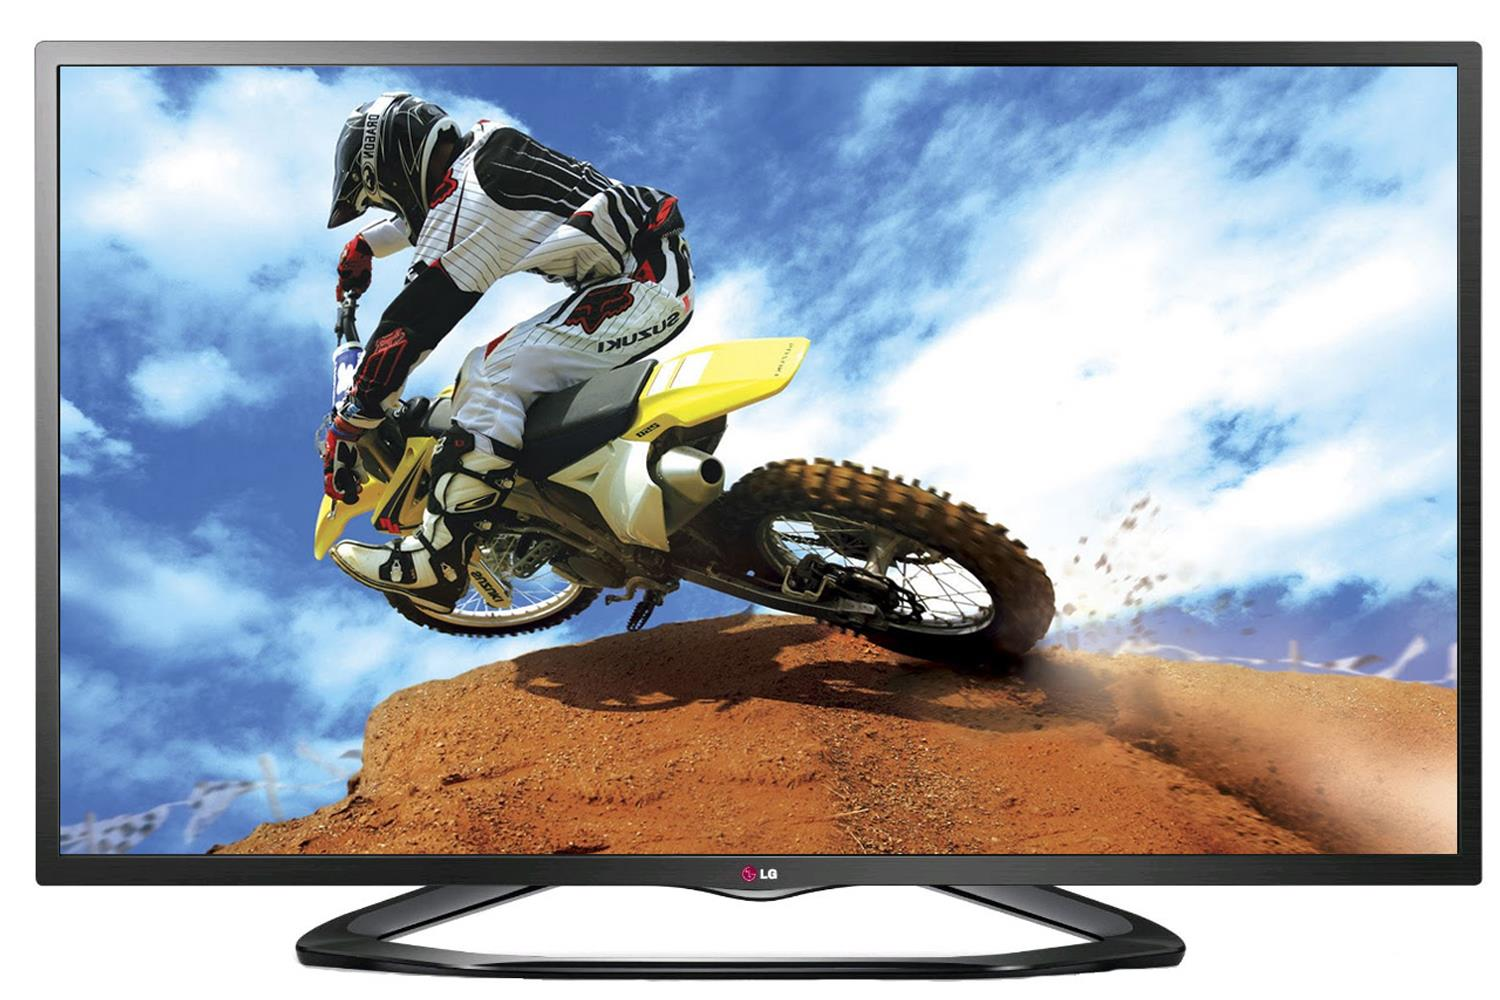 LG 47LA620V 47 Inch 3D Smart LED TV